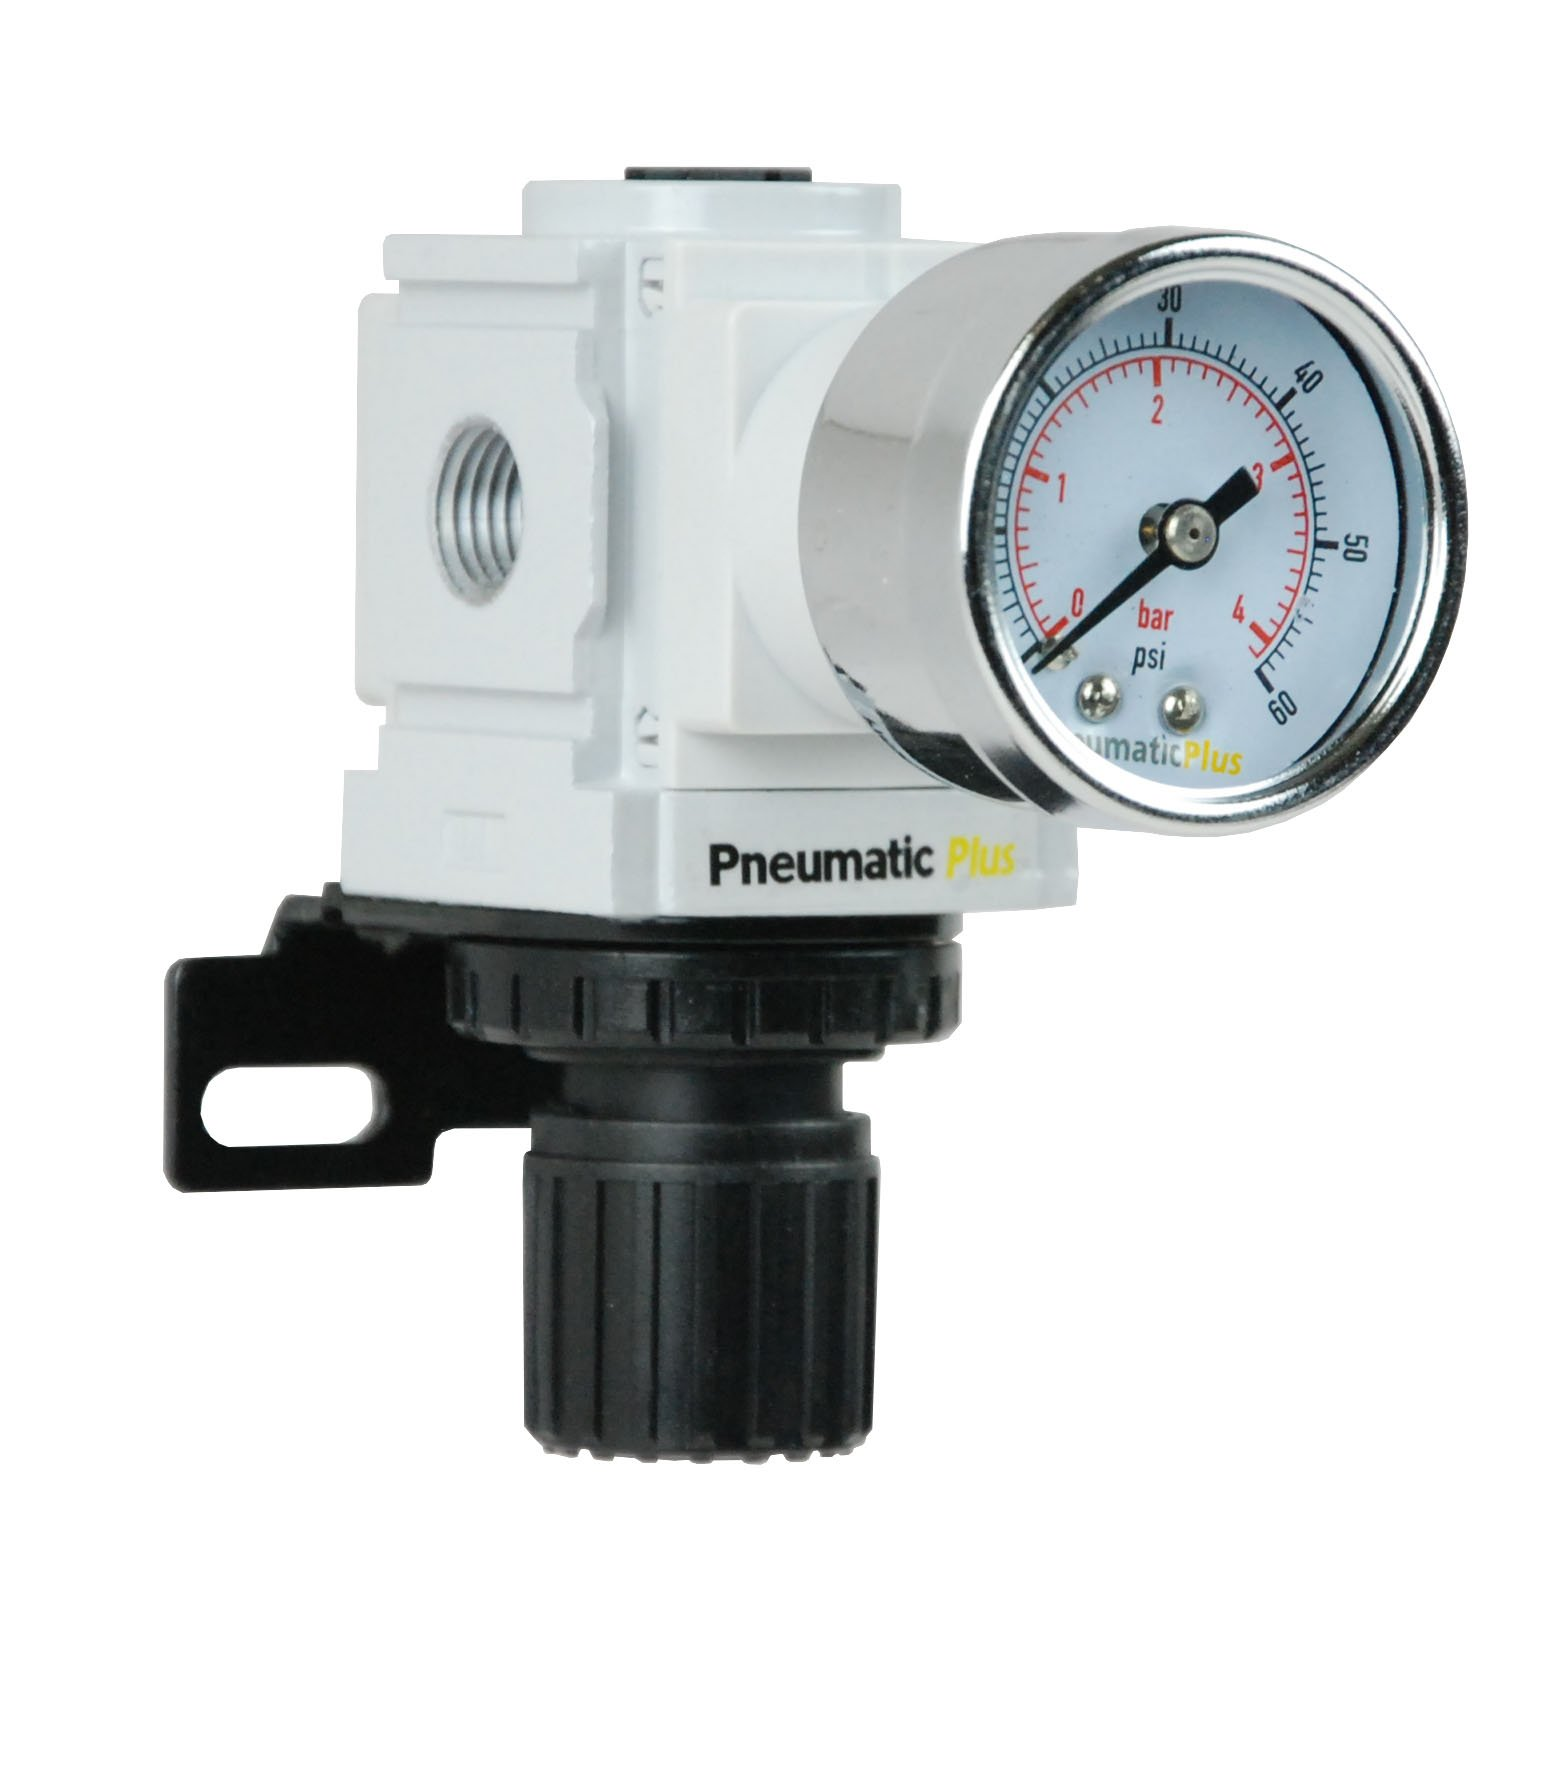 PneumaticPlus PPR2-N02BG-4 Miniature Air Pressure Regulator 1/4'' NPT - Gauge, Bracket, Low Pressure (3-60 PSI) by PneumaticPlus